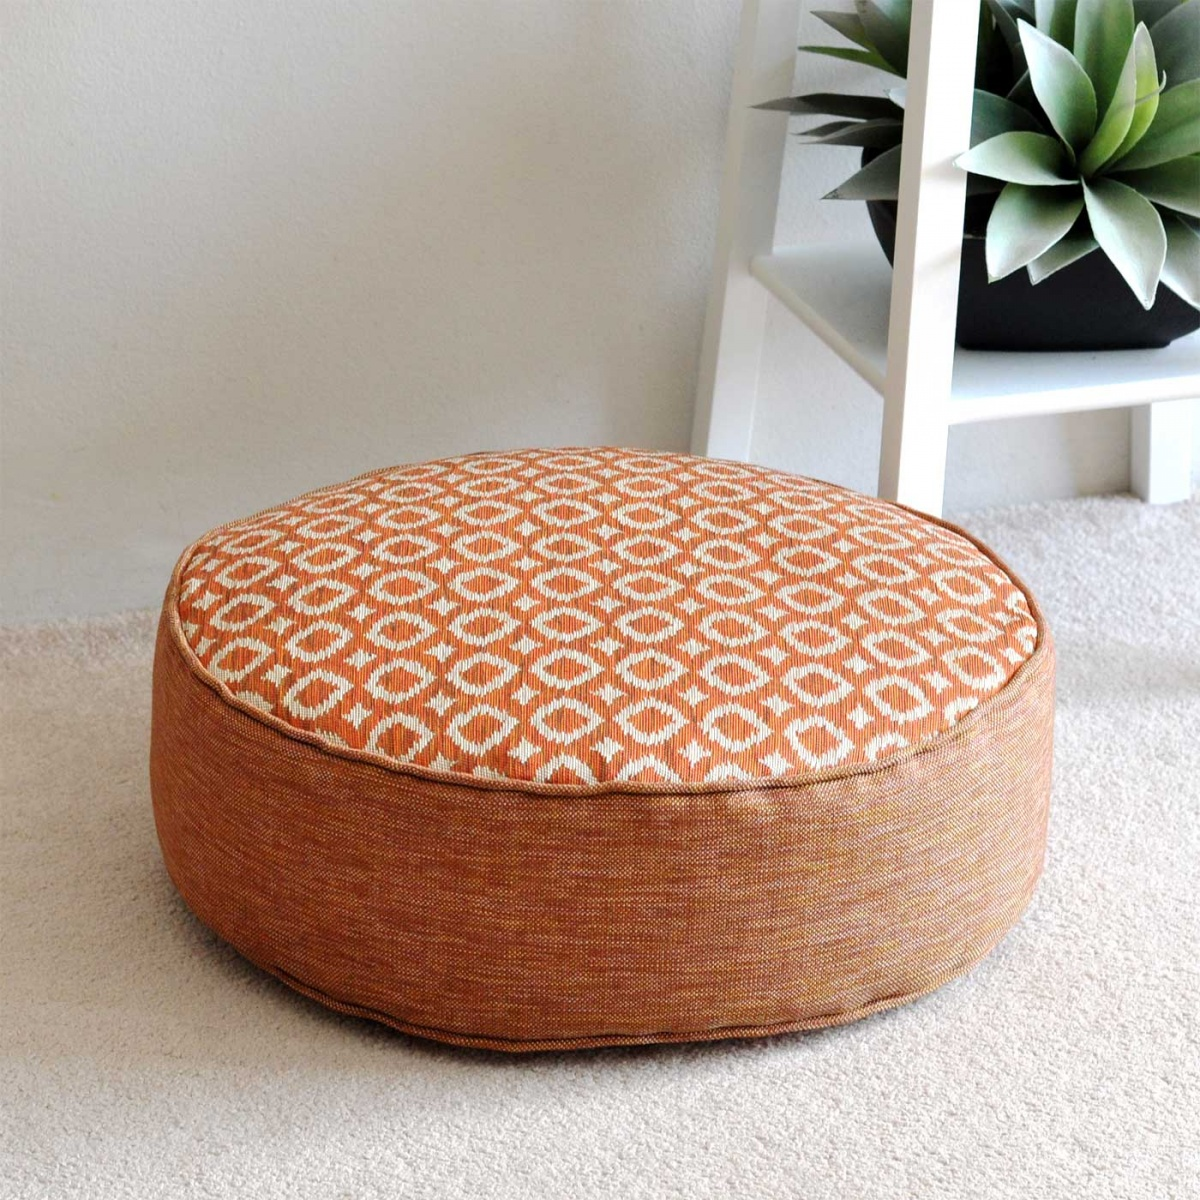 Ayana Tangerine Round Floor Cushion - 16cm | Hupper